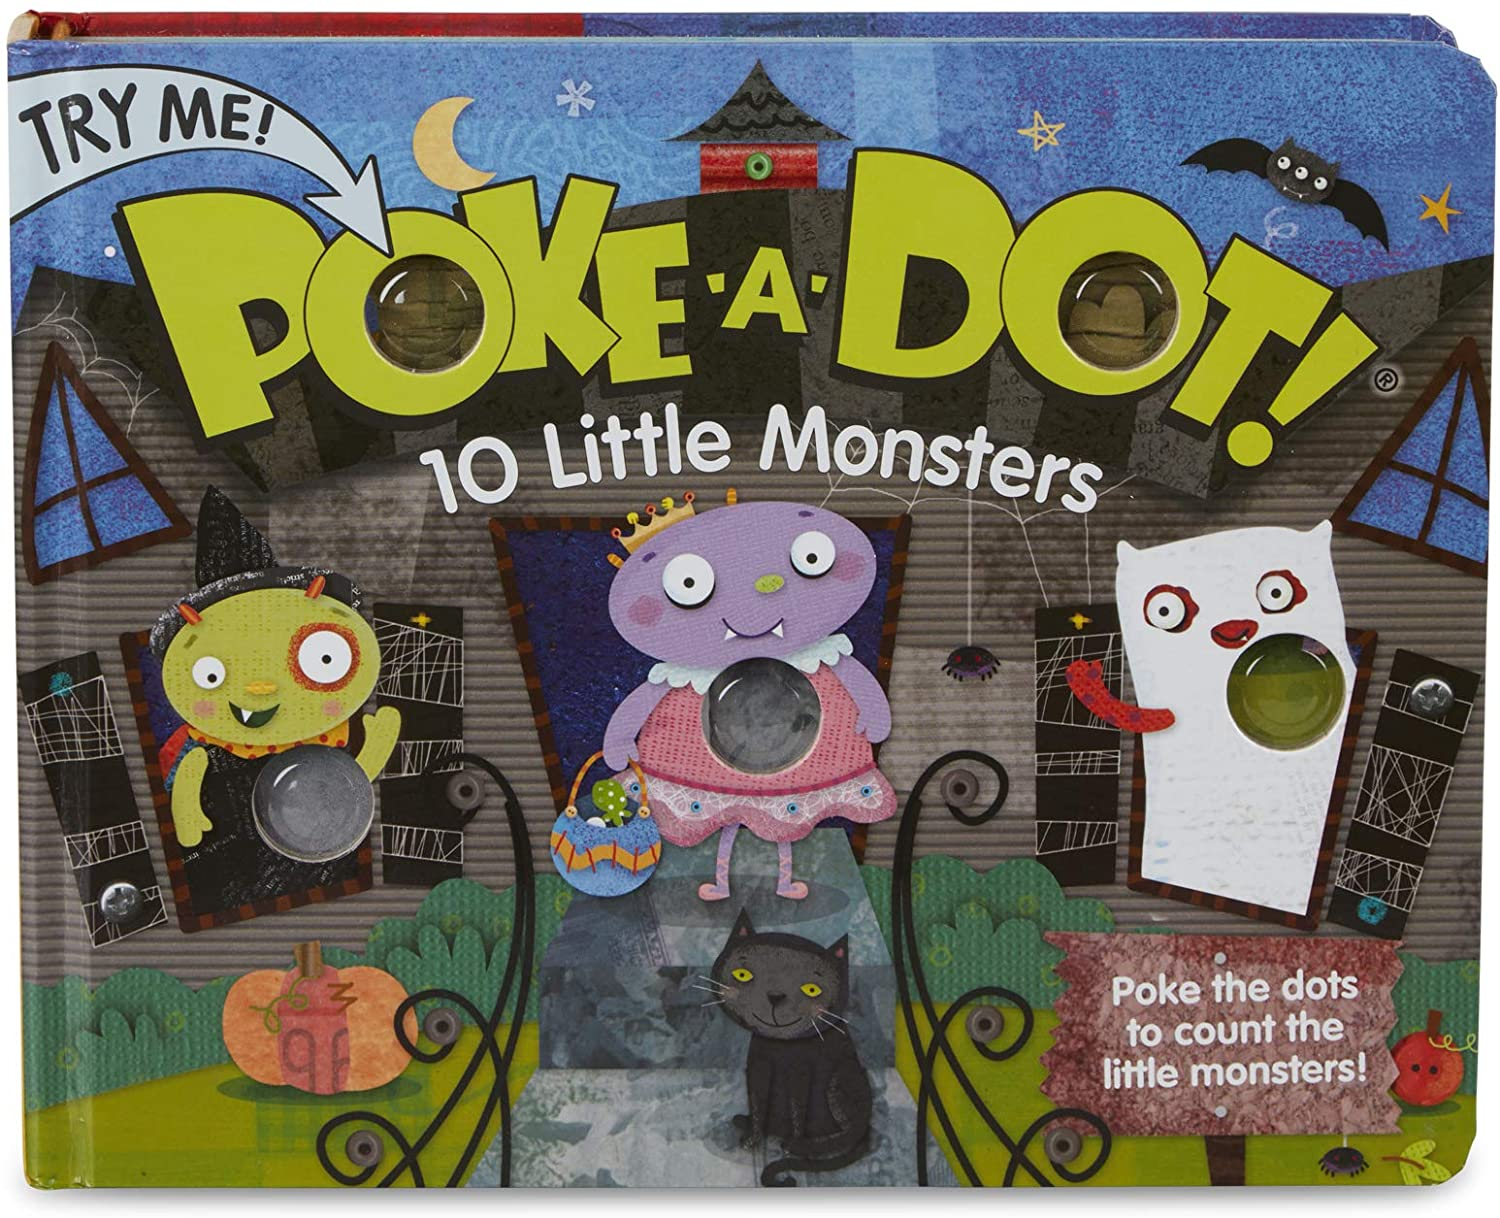 oke-A-Dot, 10 Little Monsters